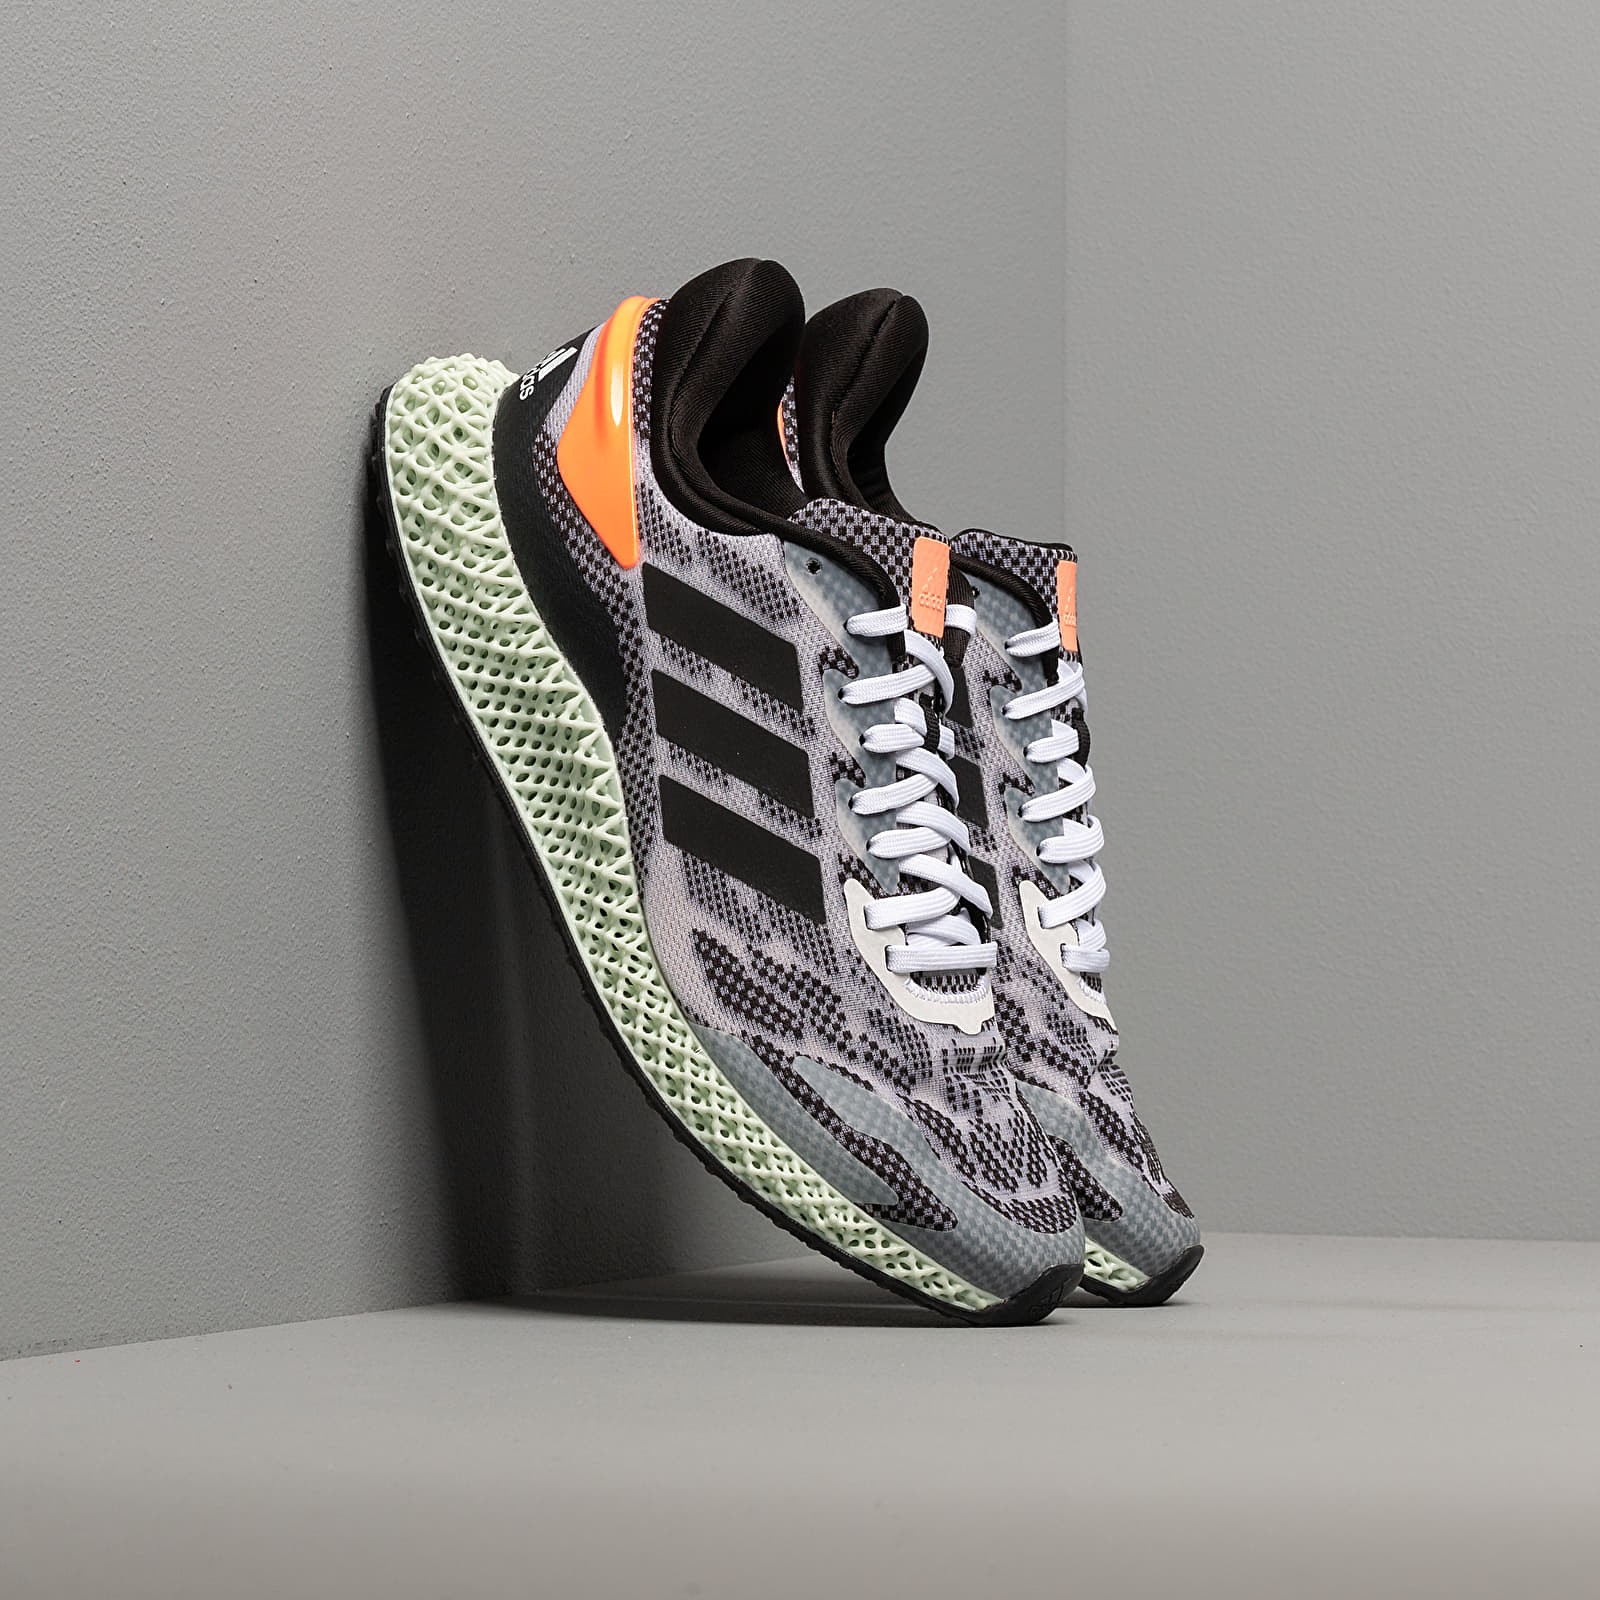 Men's shoes adidas 4D Run 1.0 Ftw White/ Core Black/ Signature Coral